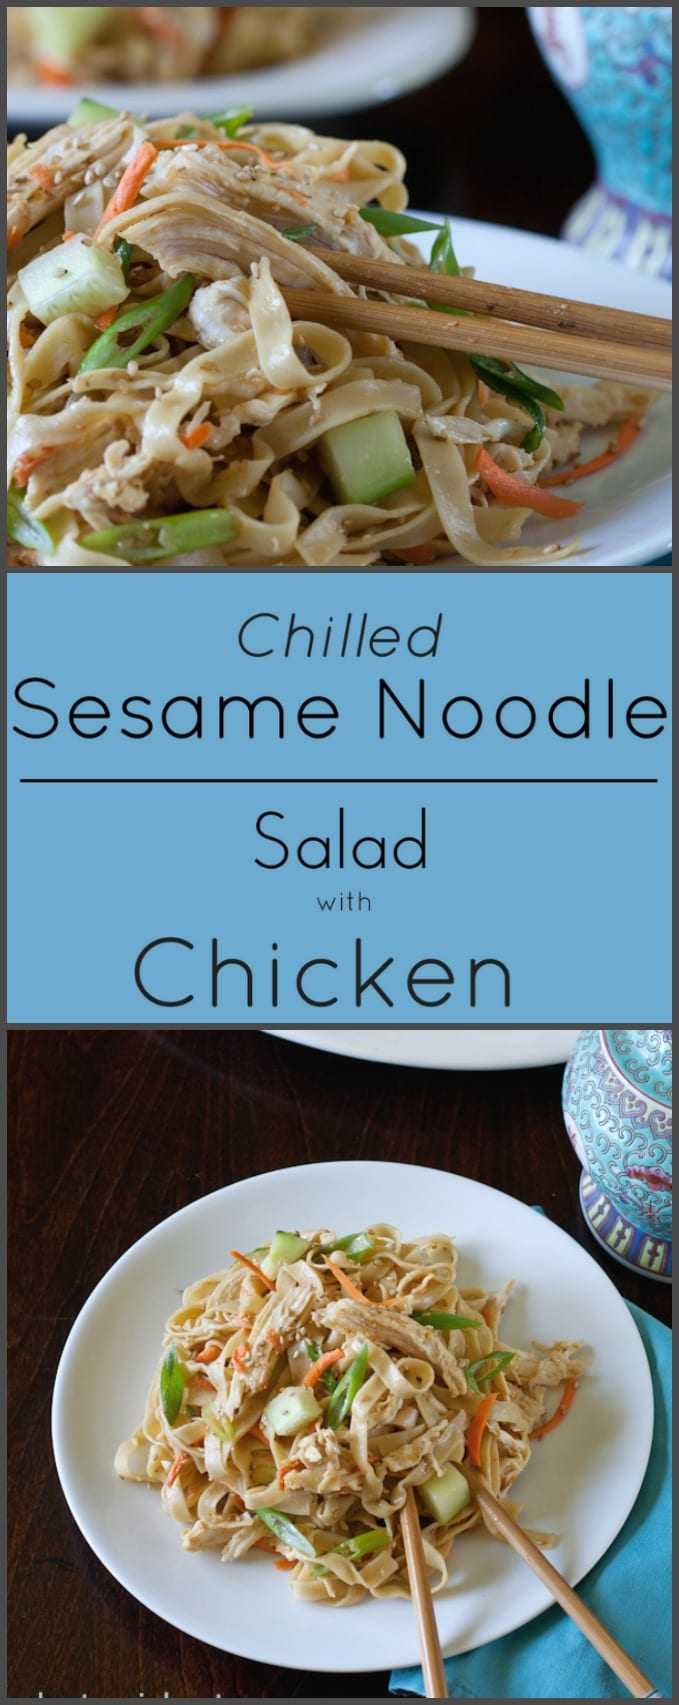 This cold Sesame Noodle Salad with Chicken is loaded with vegetables and flavors!